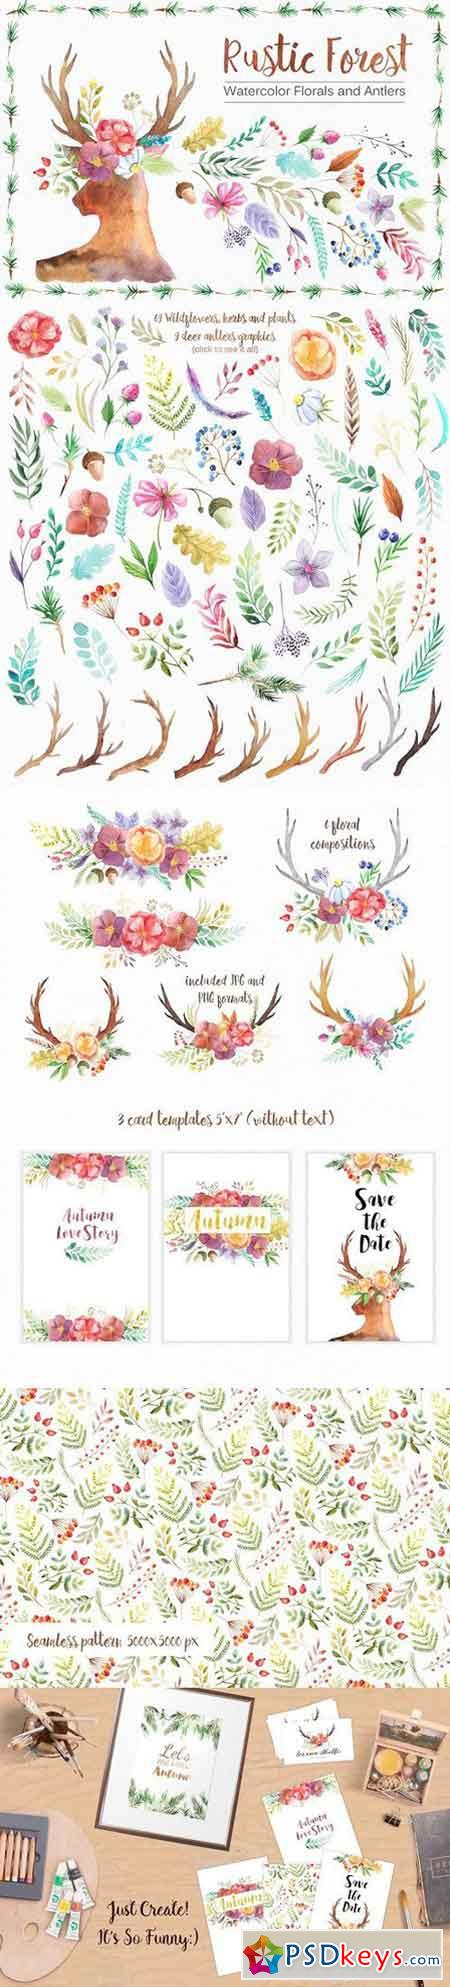 Watercolor Rustic Forest Set 852978